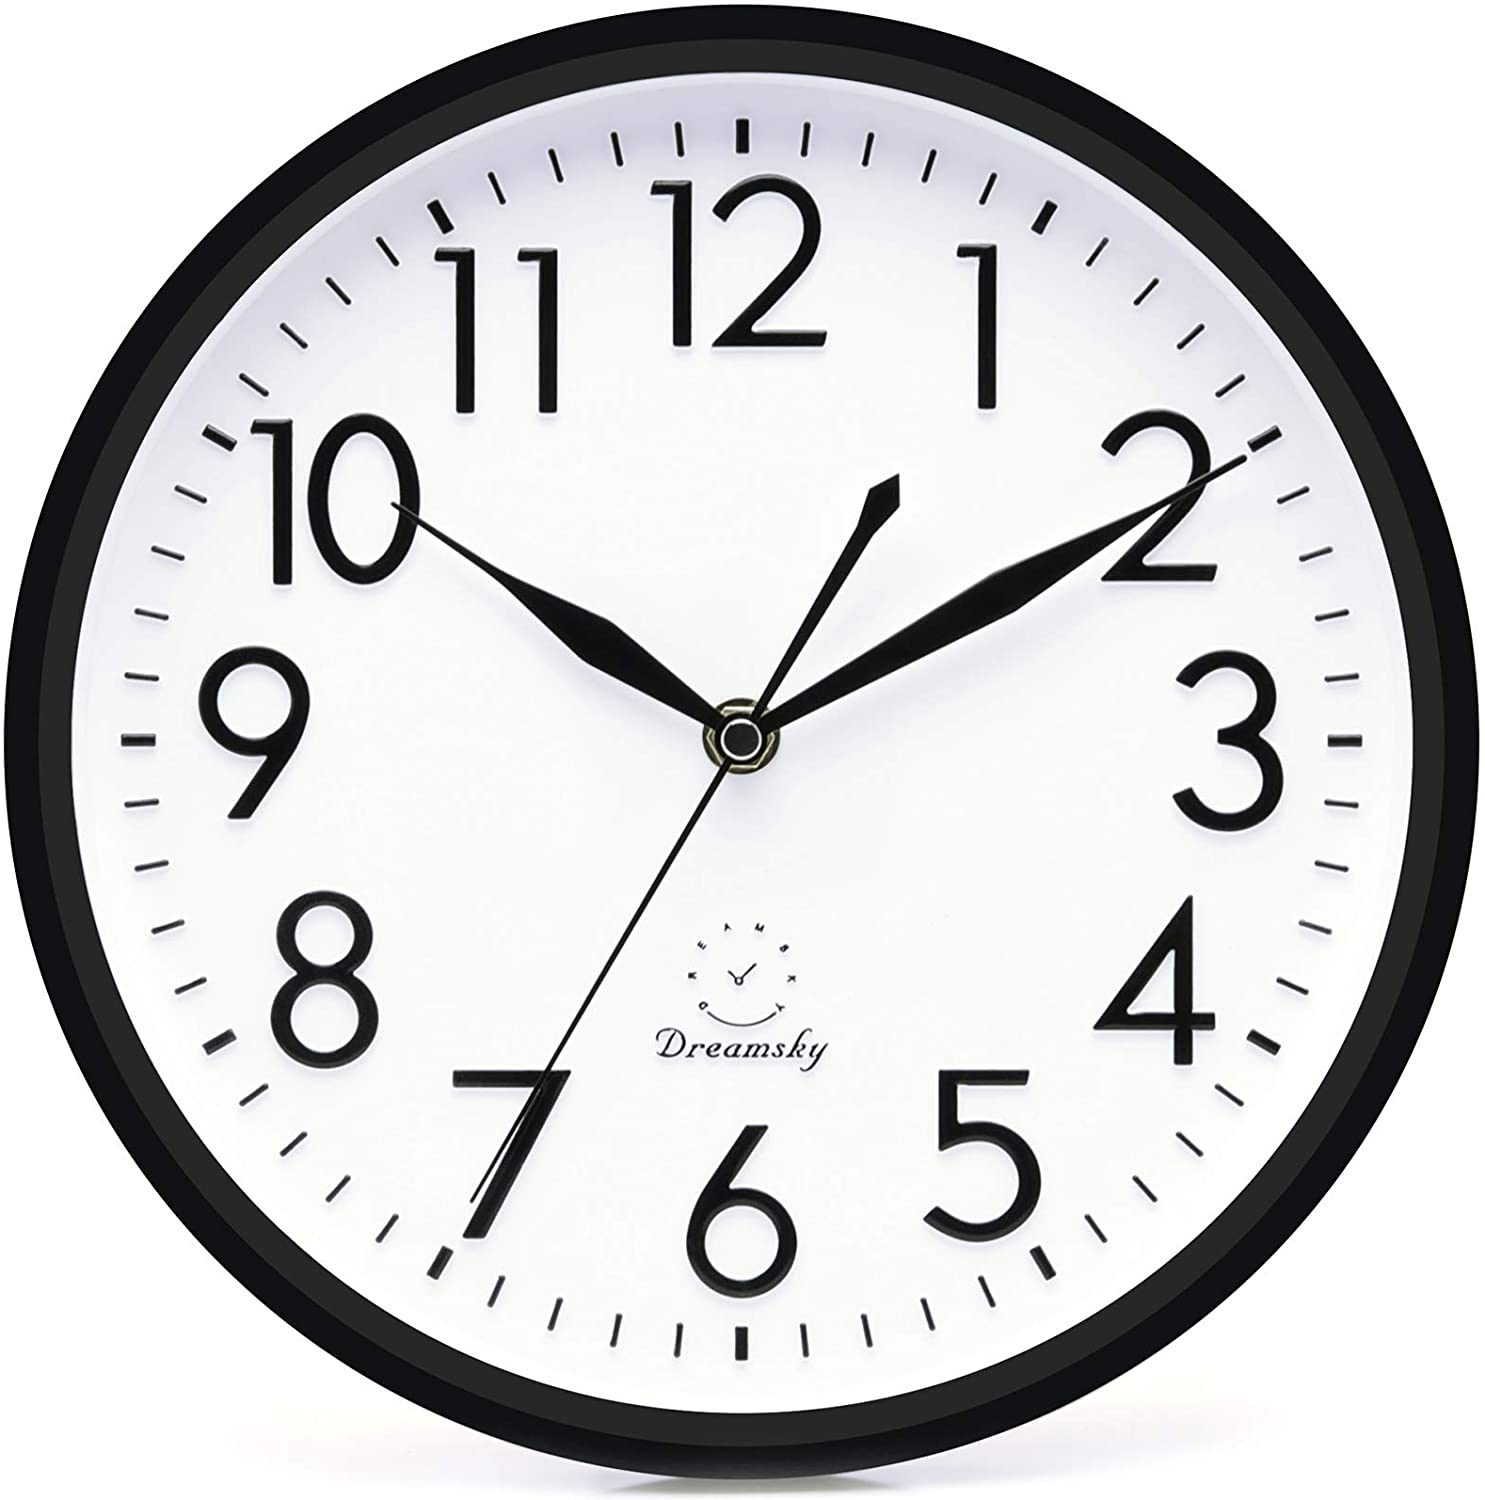 Amazon Com Dreamsky 10 Inches Silent Non Ticking Quartz Wall Clock Decorative Indoor Kitchen Clock 3d Numbers Display Battery Operated Wall Clocks Home Kitchen